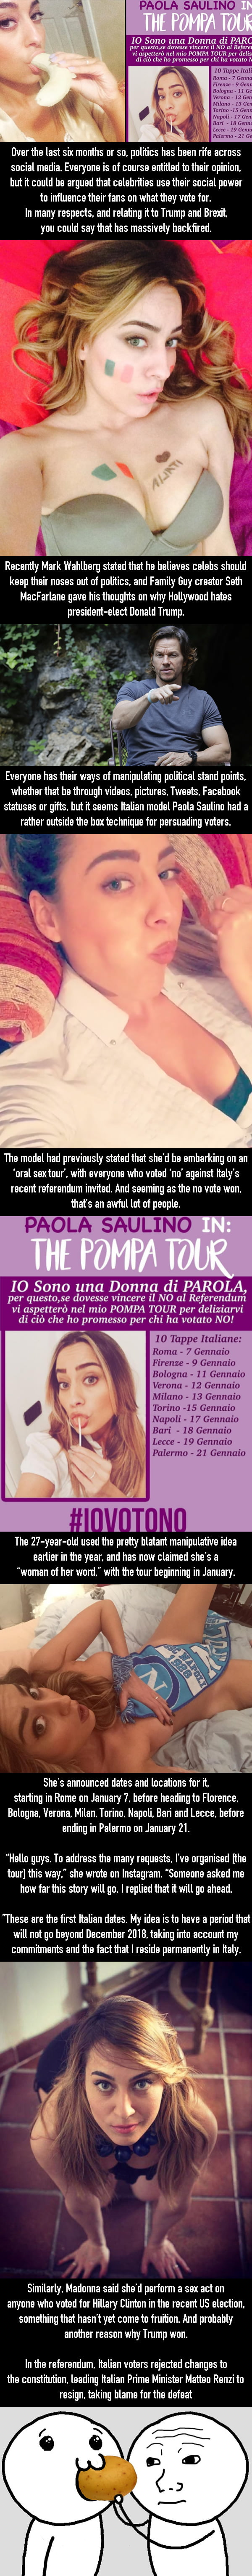 "Model Embarking On Oral Sex Tour For People Who Voted ""No"" In Italy Referendum"